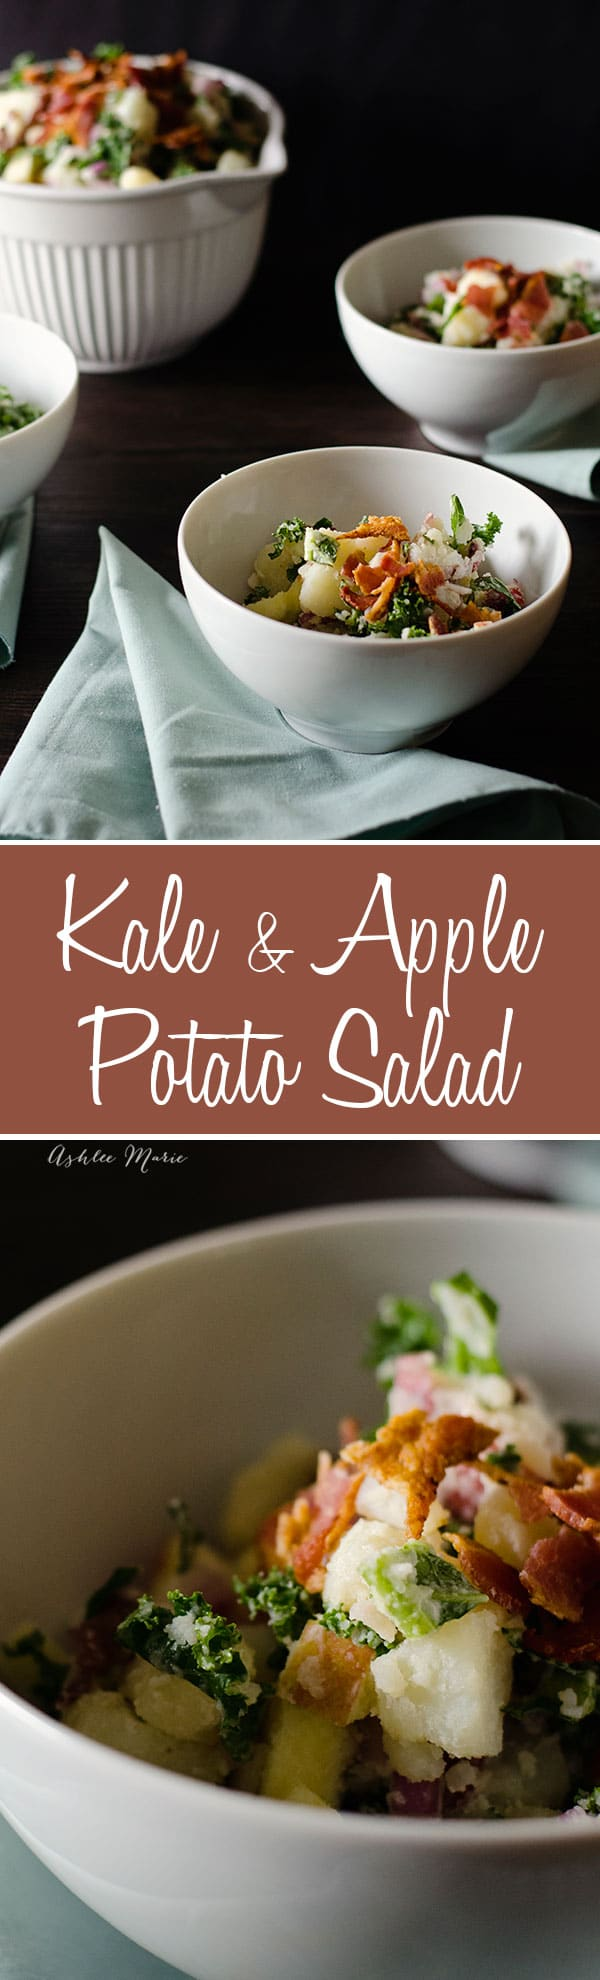 this kale and apple potato salad is a twist off your classic potato salad, a little bit of crunch, a little bit of sweet, and bacon